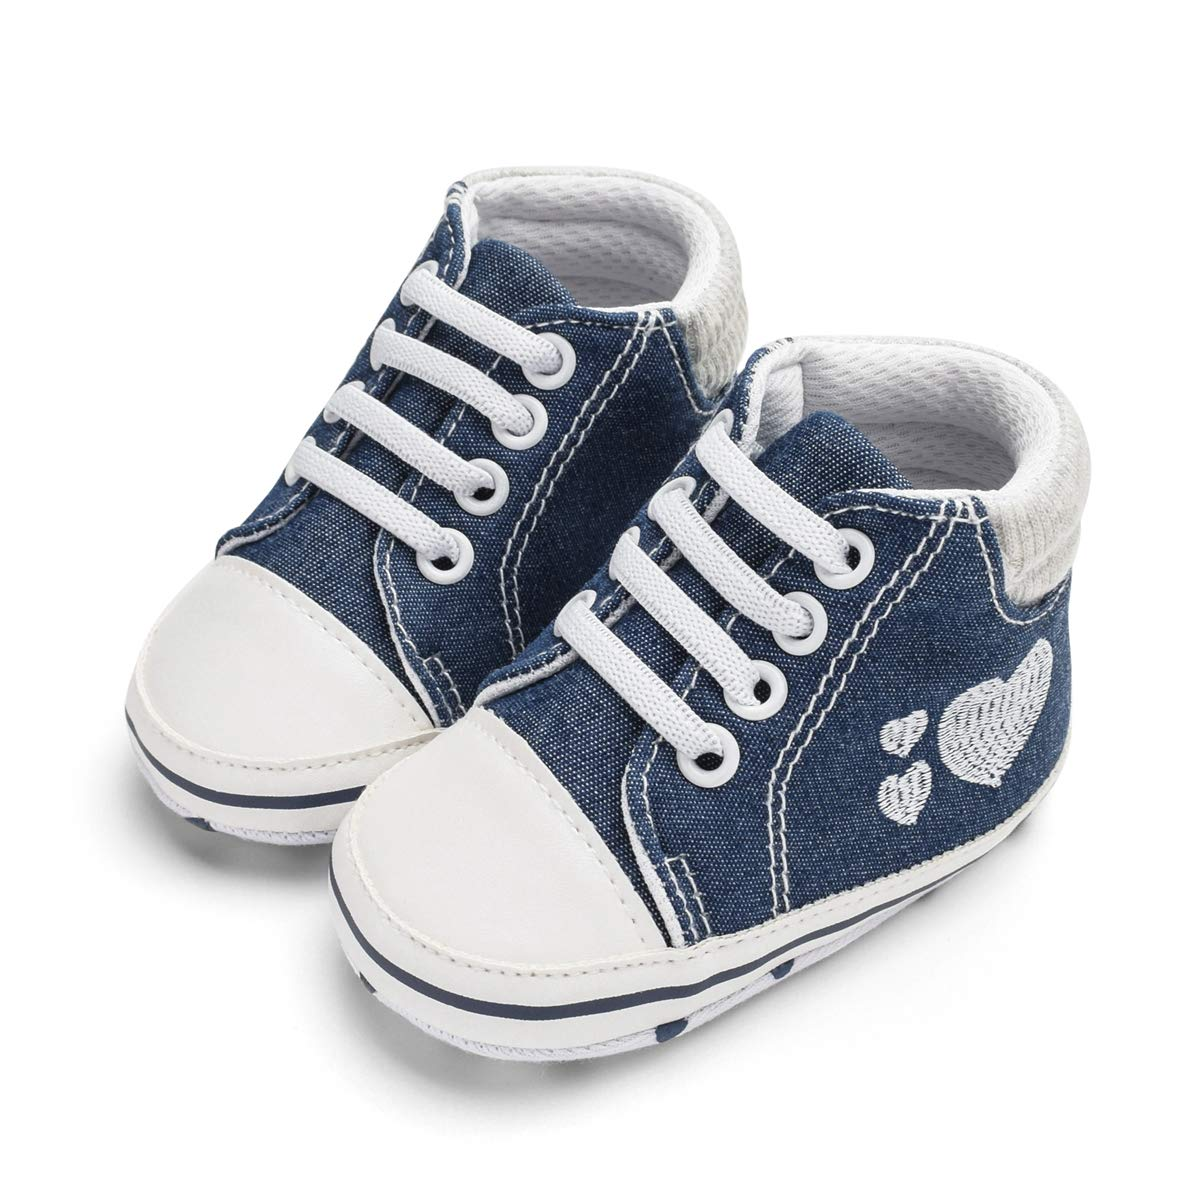 Unisex Baby Boys Girls Soft Anti-Slip Sole Sneakers Newborn Infant First Walkers Canvas Denim Shoes,